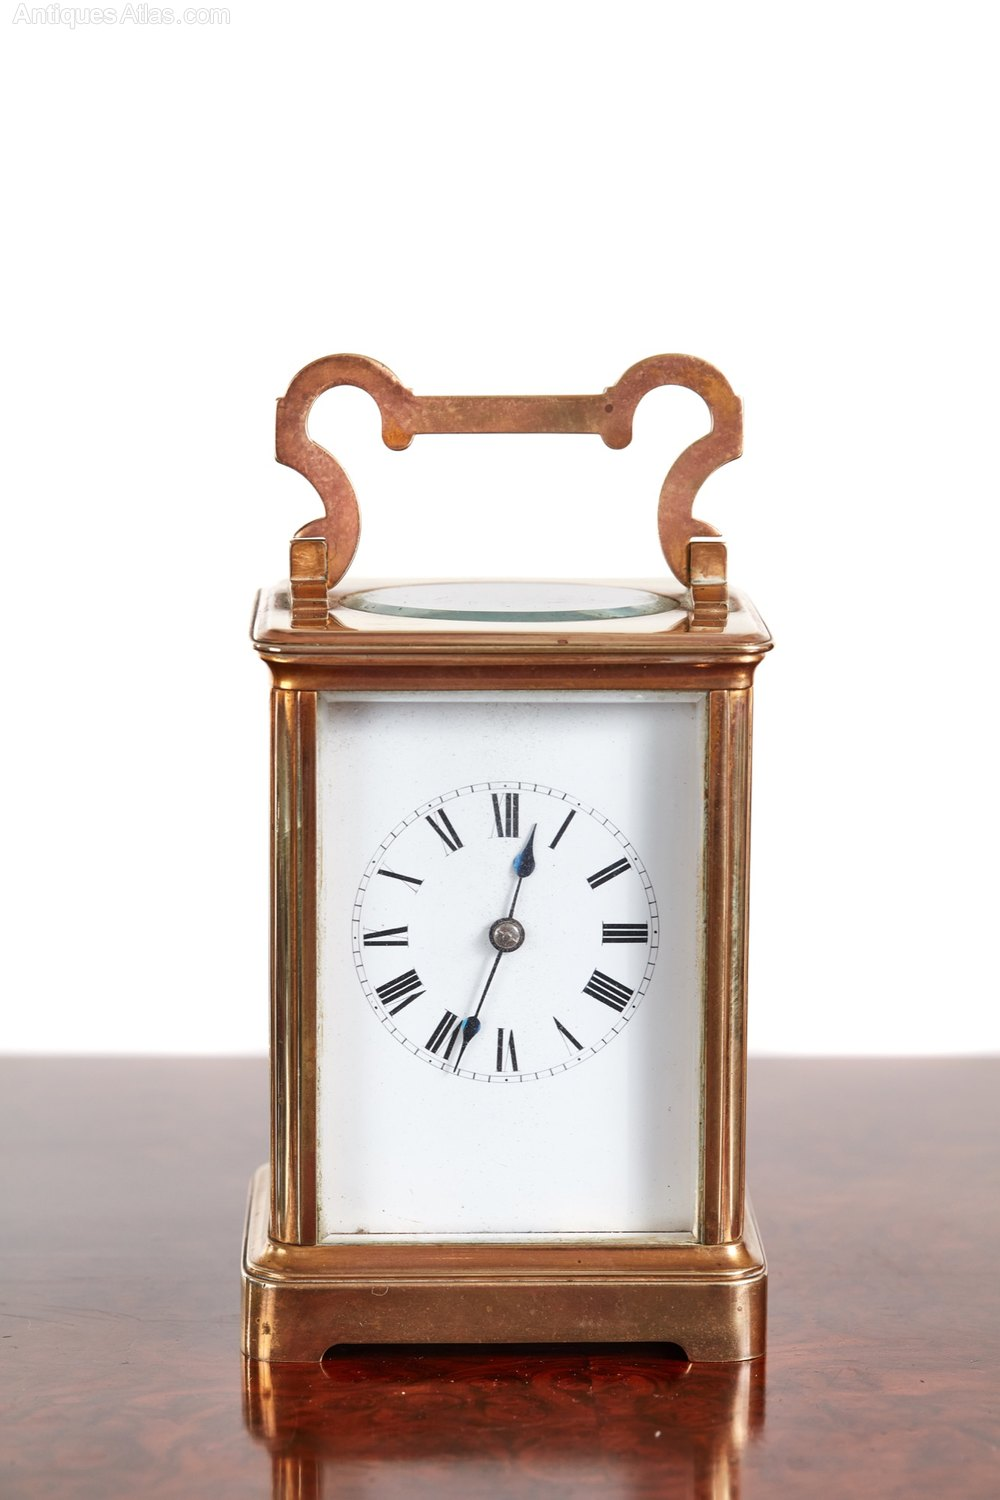 dating french carriage clocks This blog is about clocks, mostly french bayard carriage clocks made at a later date as i can't see any other bayard clocks in.